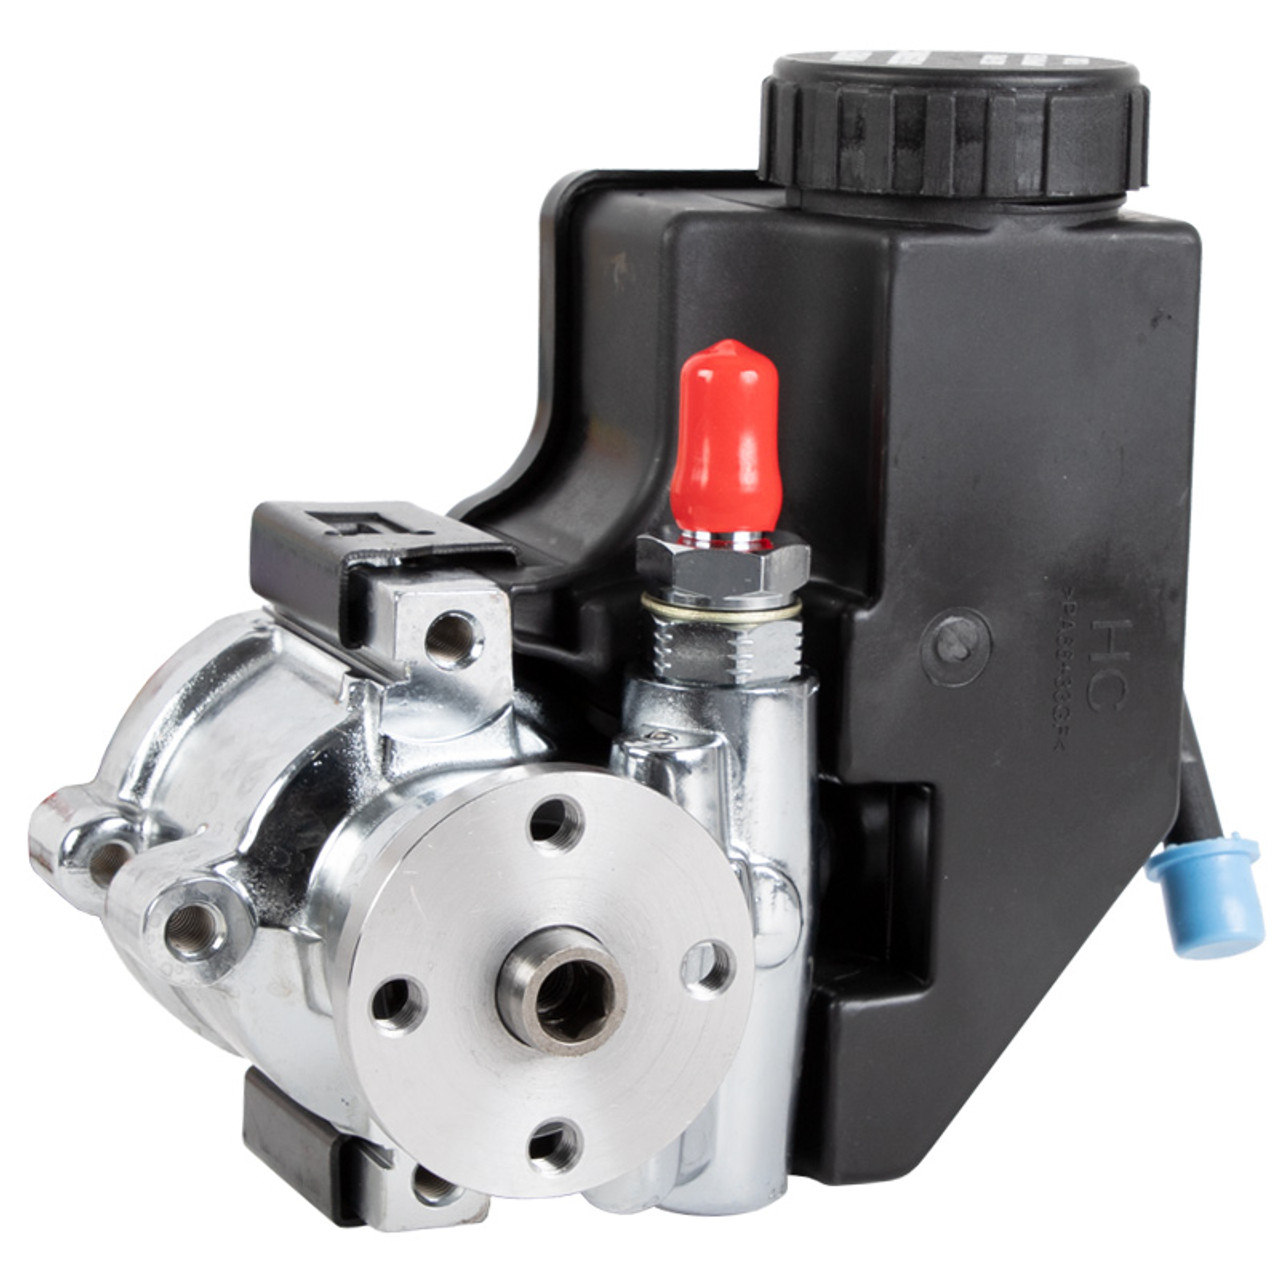 Gm Type Ii Power Steering Pump With Attached Reservoir